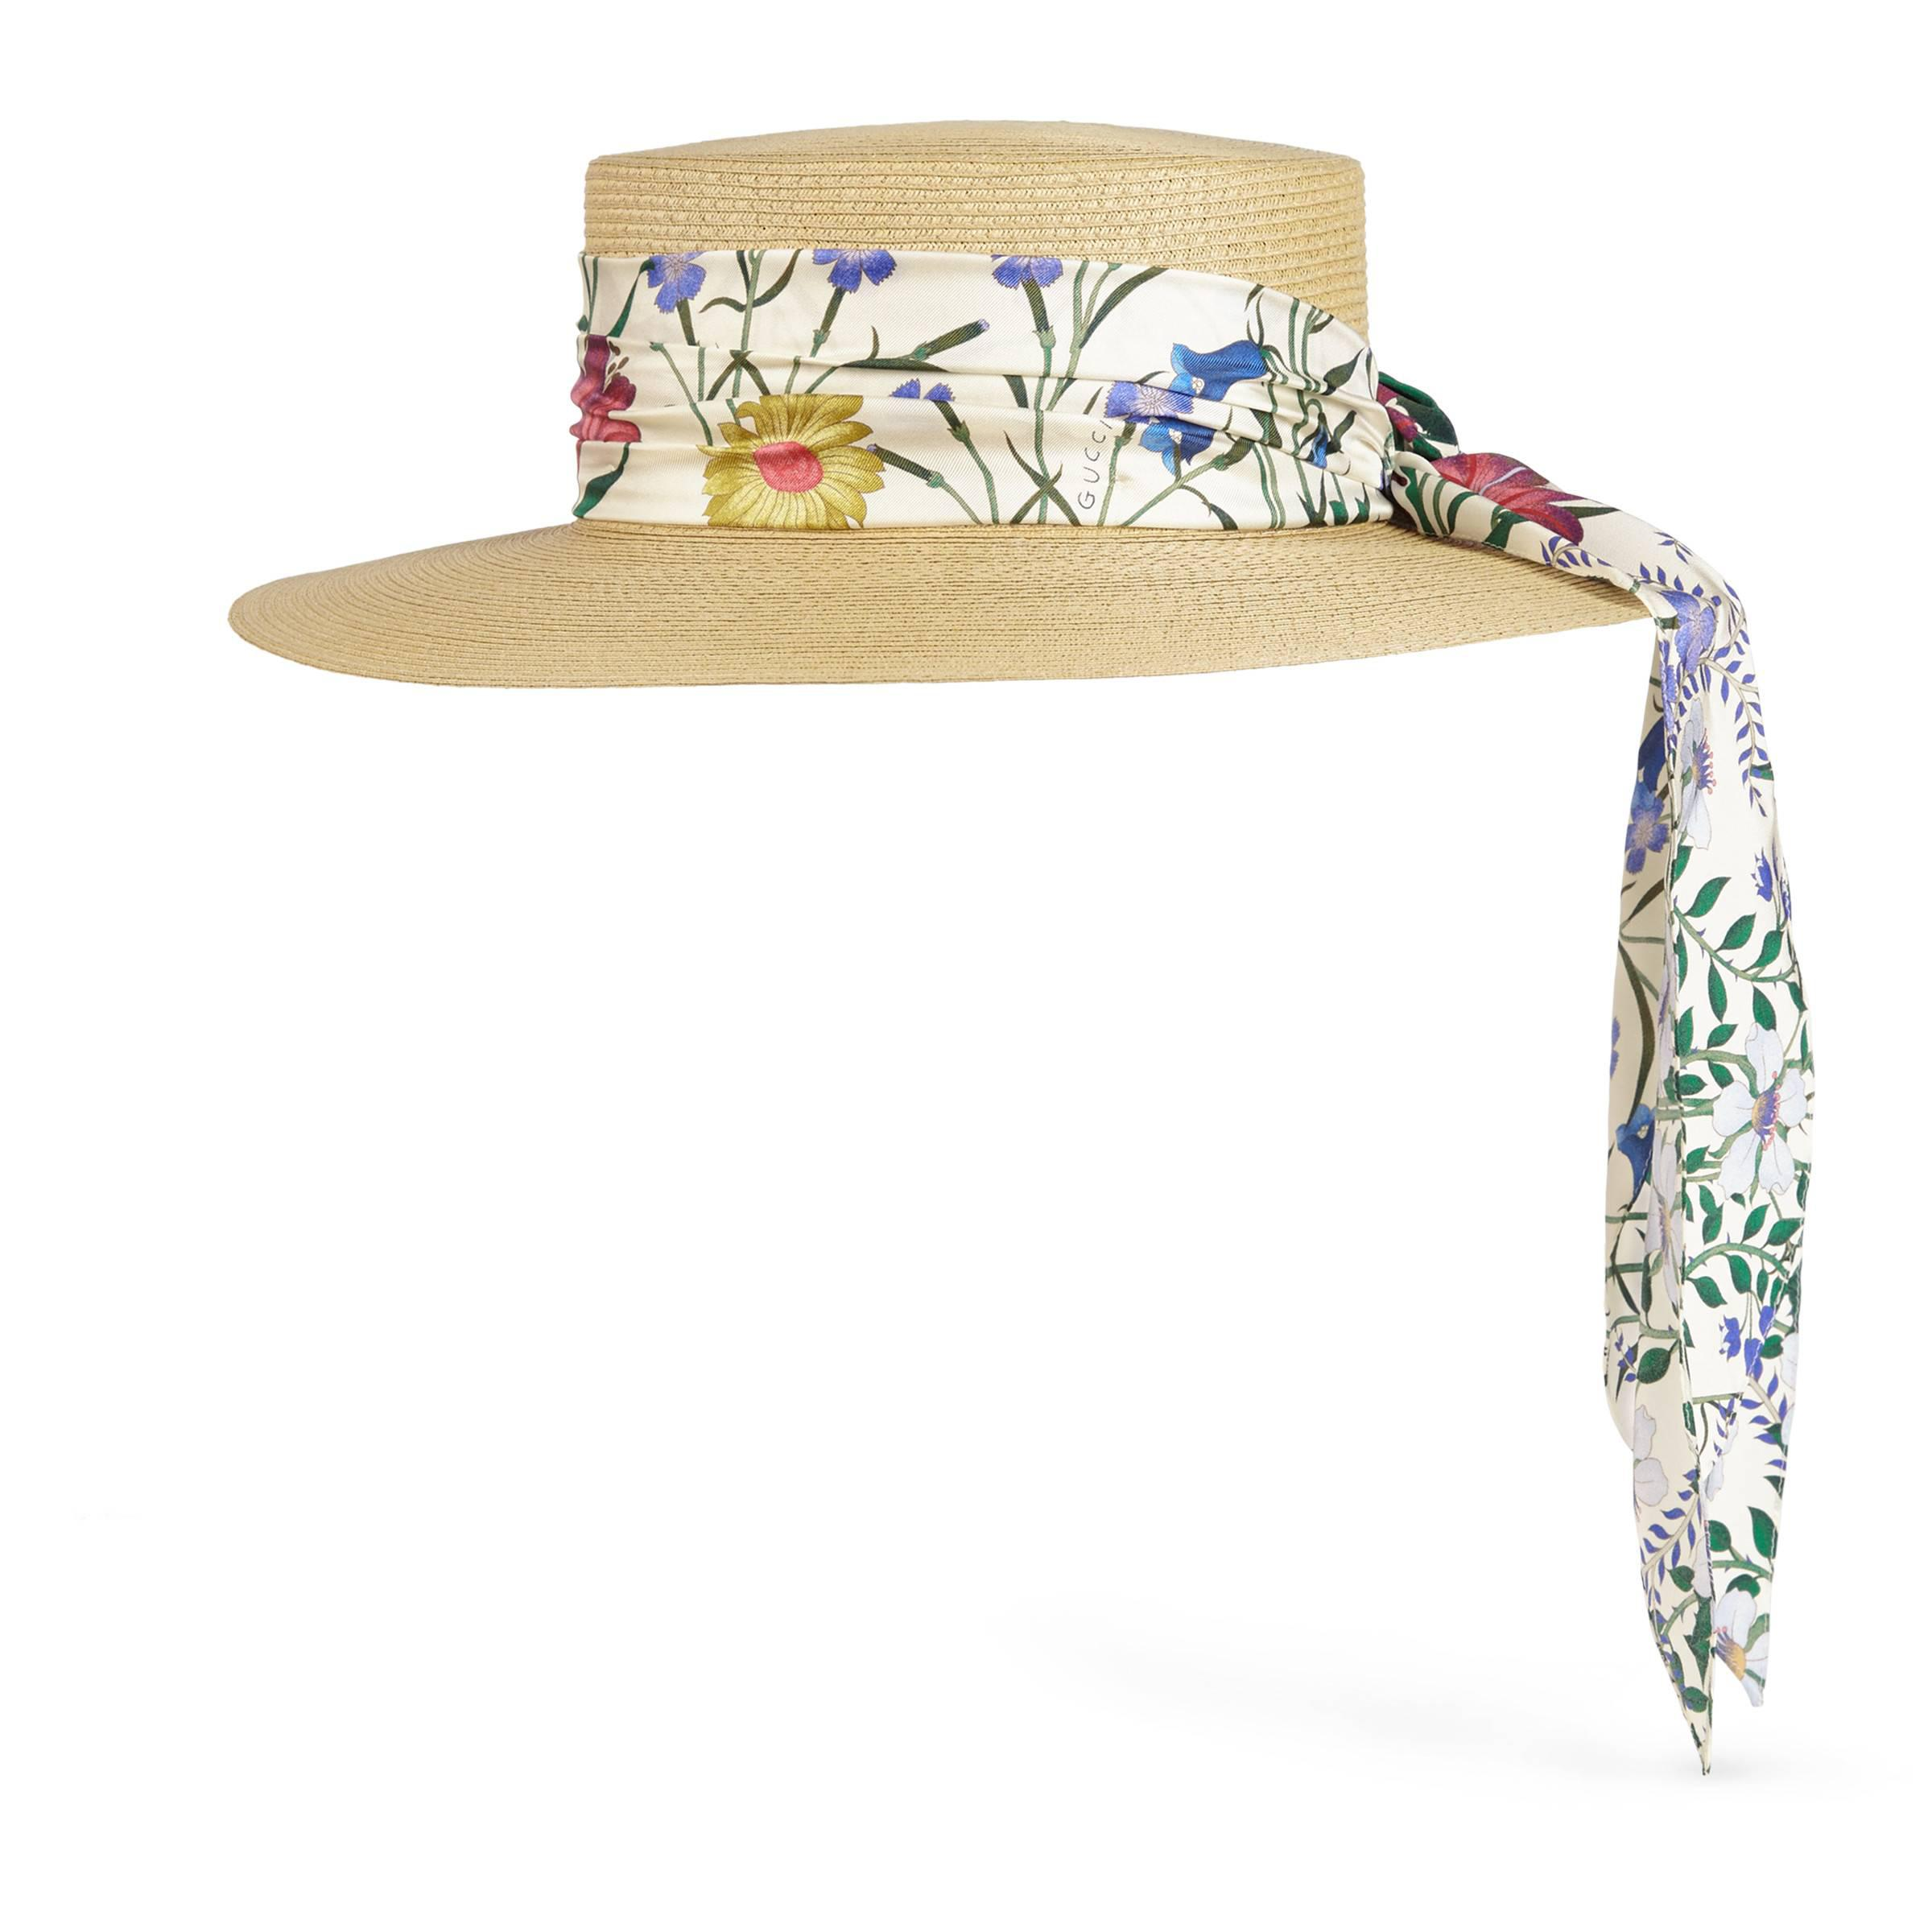 e2619acbac437 Gucci Papier Hat With New Flora Ribbon in Natural - Lyst